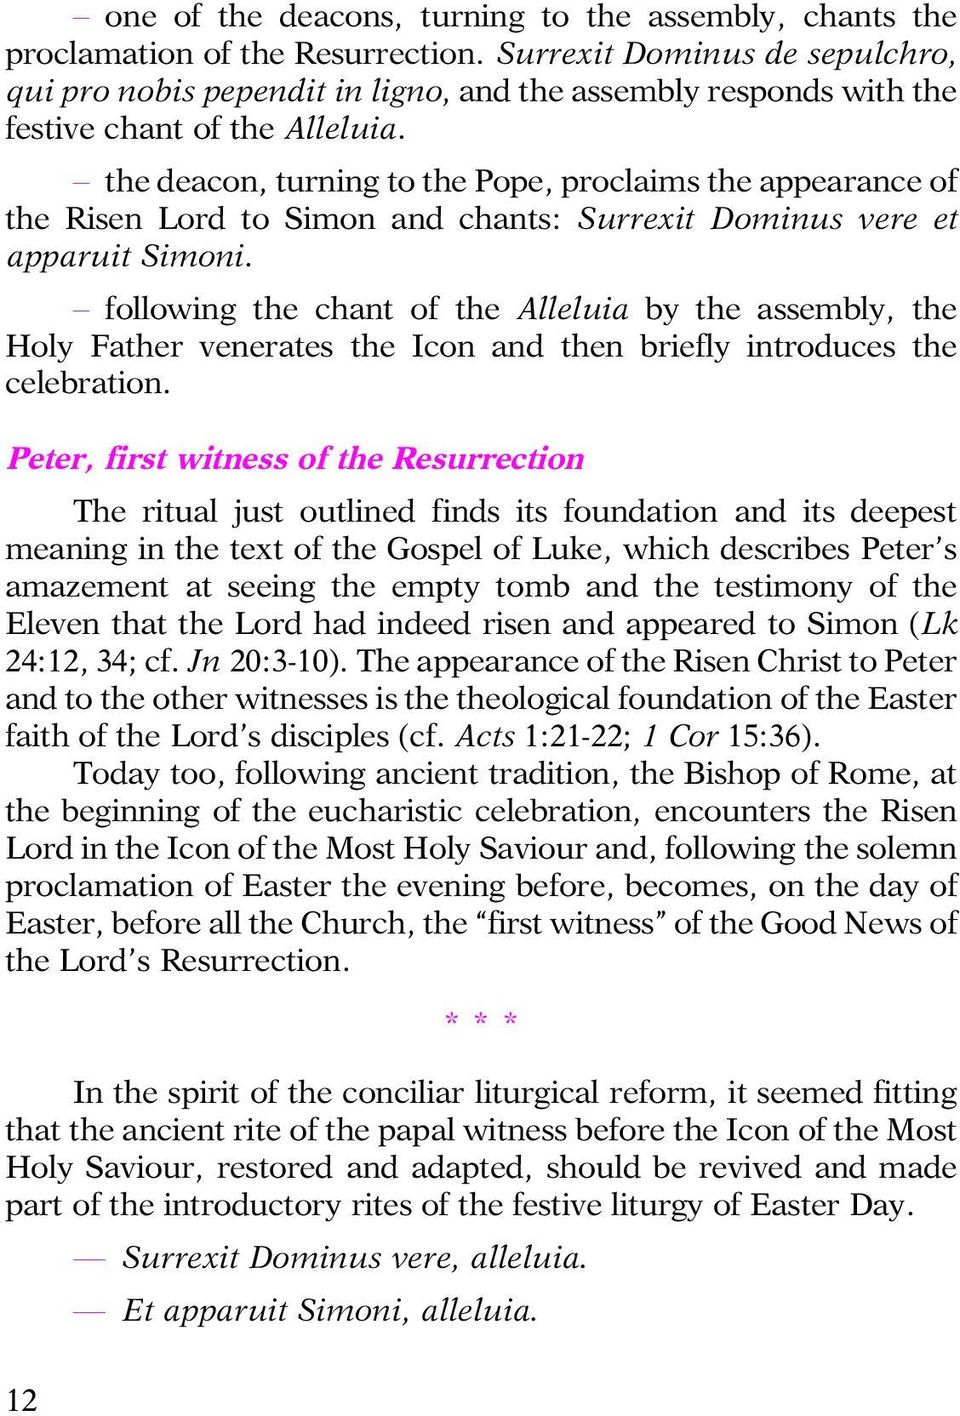 the deacon, turning to the Pope, proclaims the appearance of the Risen Lord to Simon and chants: Surrexit Dominus vere et apparuit Simoni.